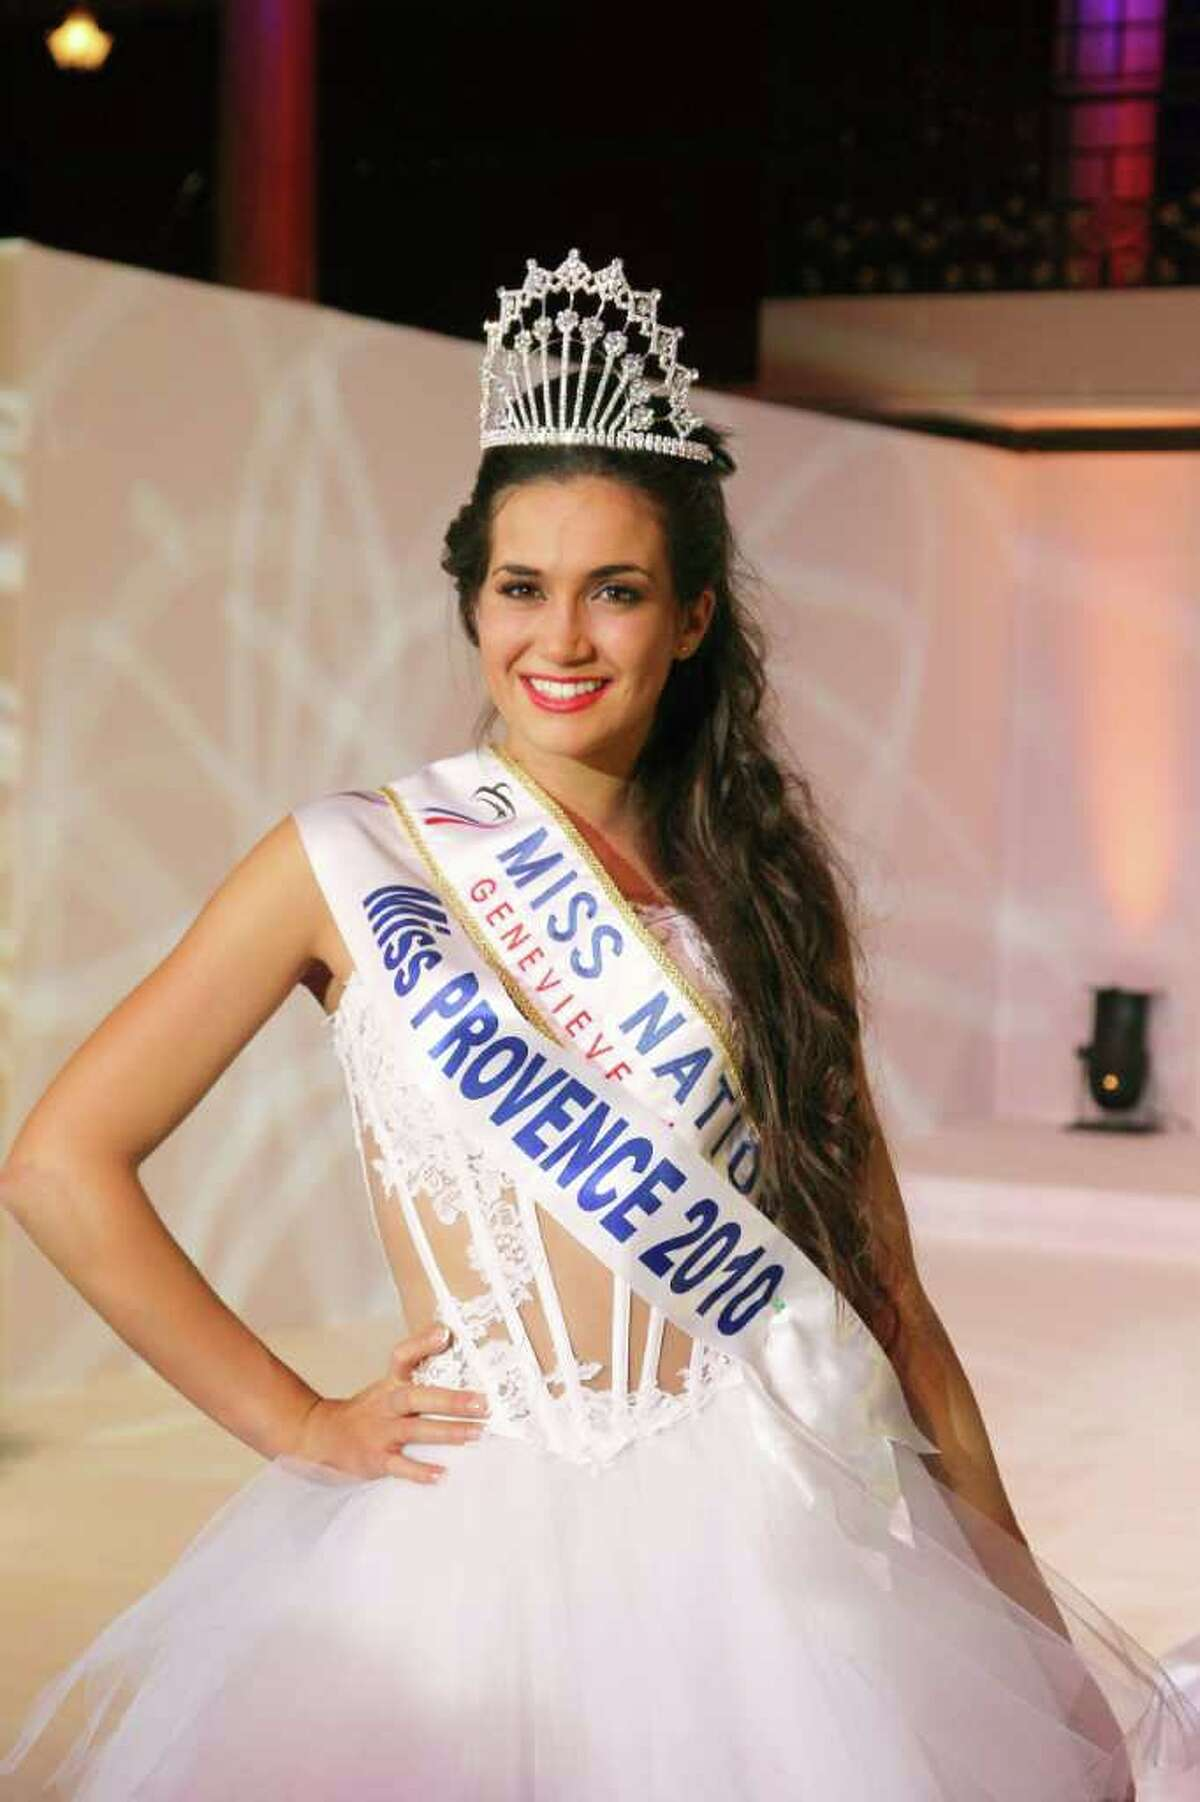 Miss Provence Barbara Morel, 19, smiles after being crowned Miss Nationale 2011 beauty contest of the